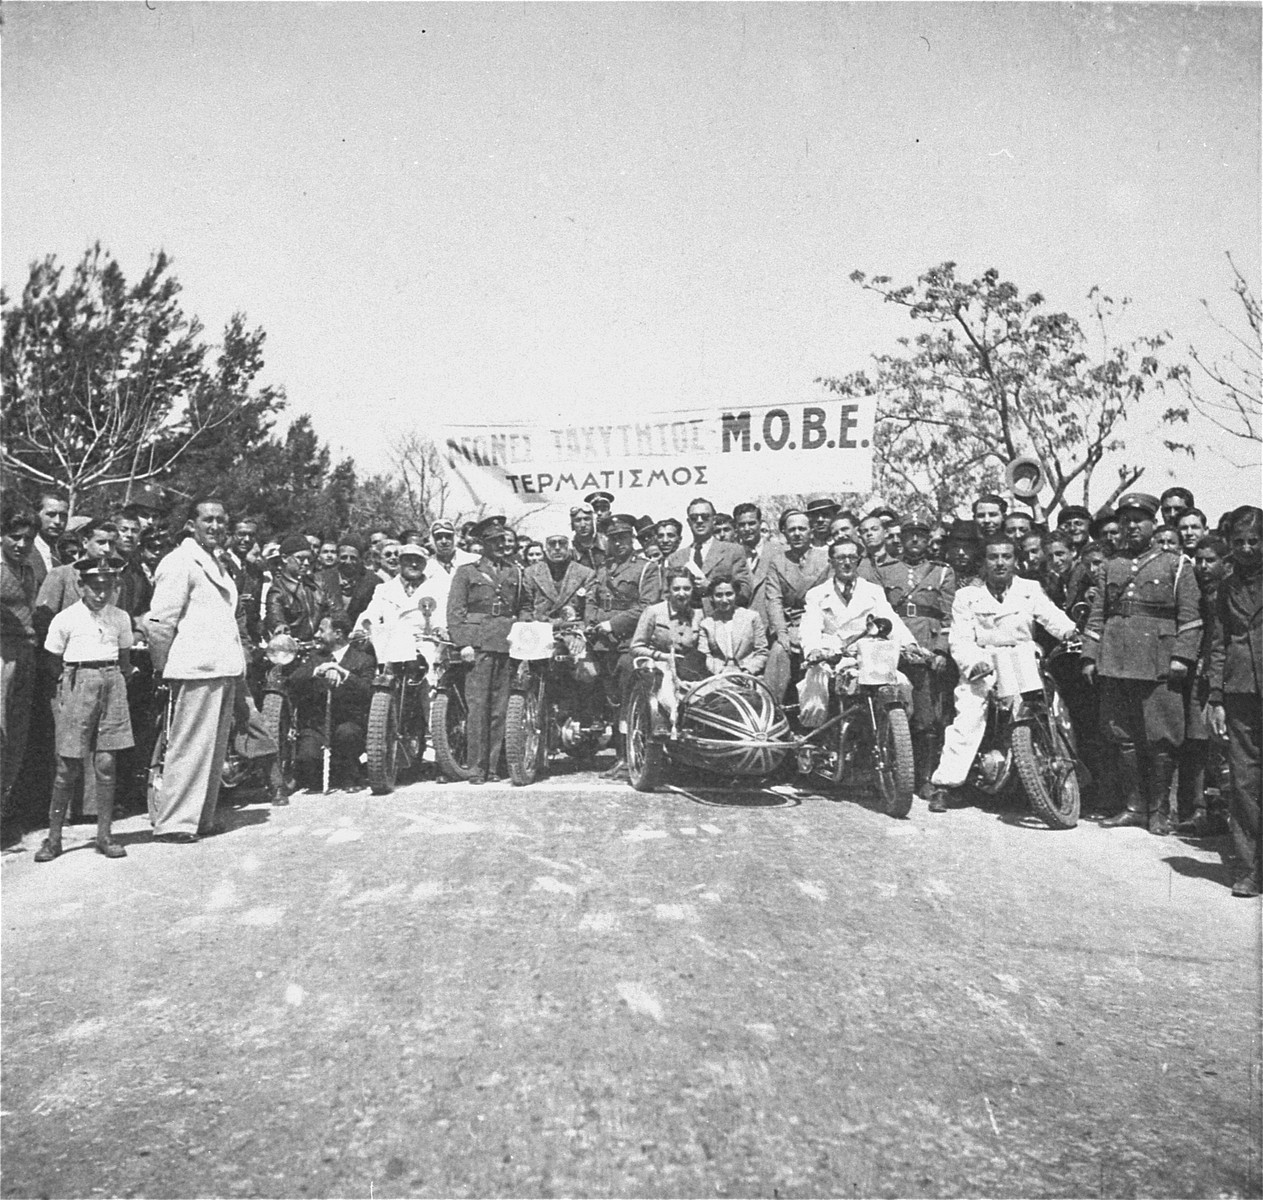 Competitors and spectators pose at the starting line of a motorcycle race in Salonika.  The donor, Leon Benveniste, is pictured on the bike at the right.